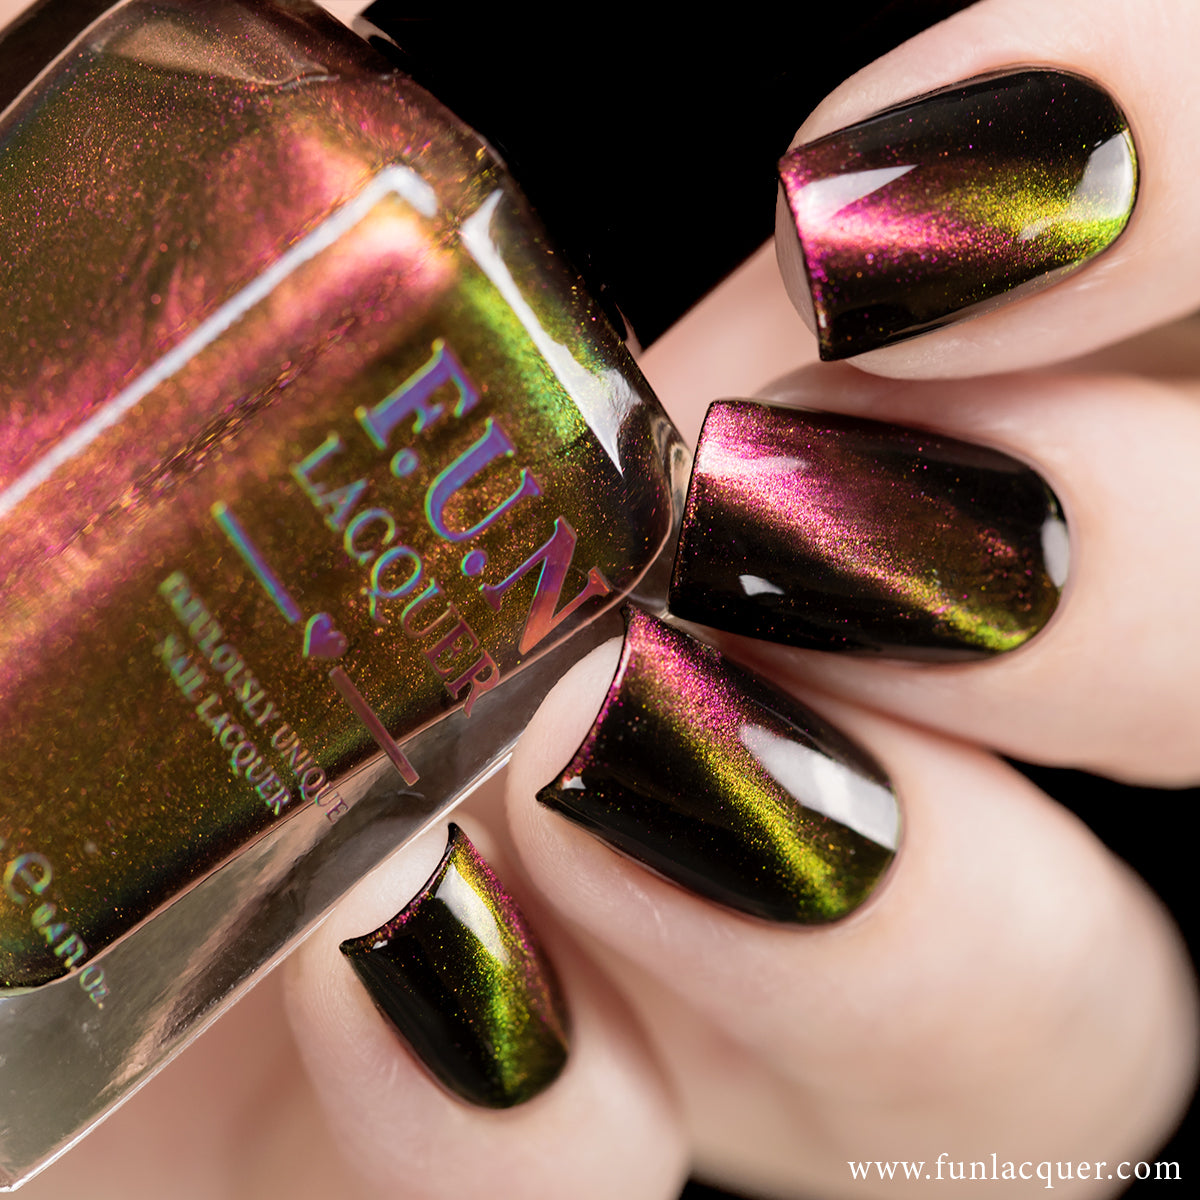 *PRE-SALE* F.U.N Lacquer - Extremely Beautiful!